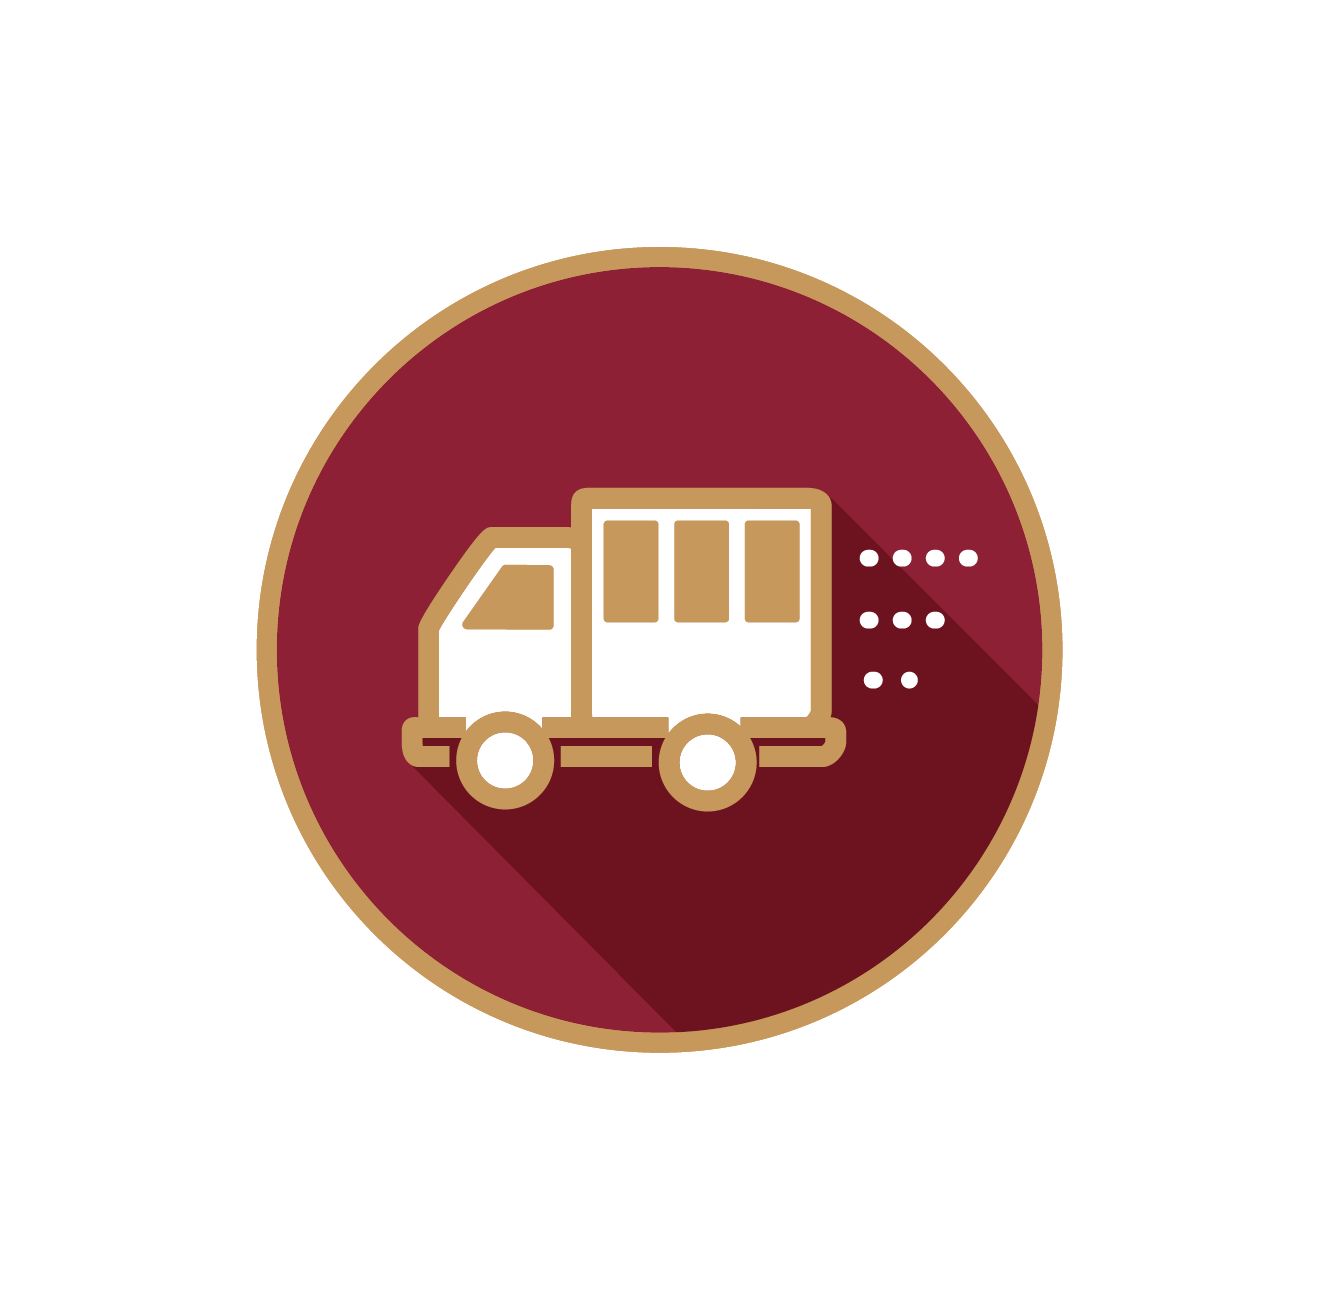 Students can get to campus easily for classes with our shuttle.